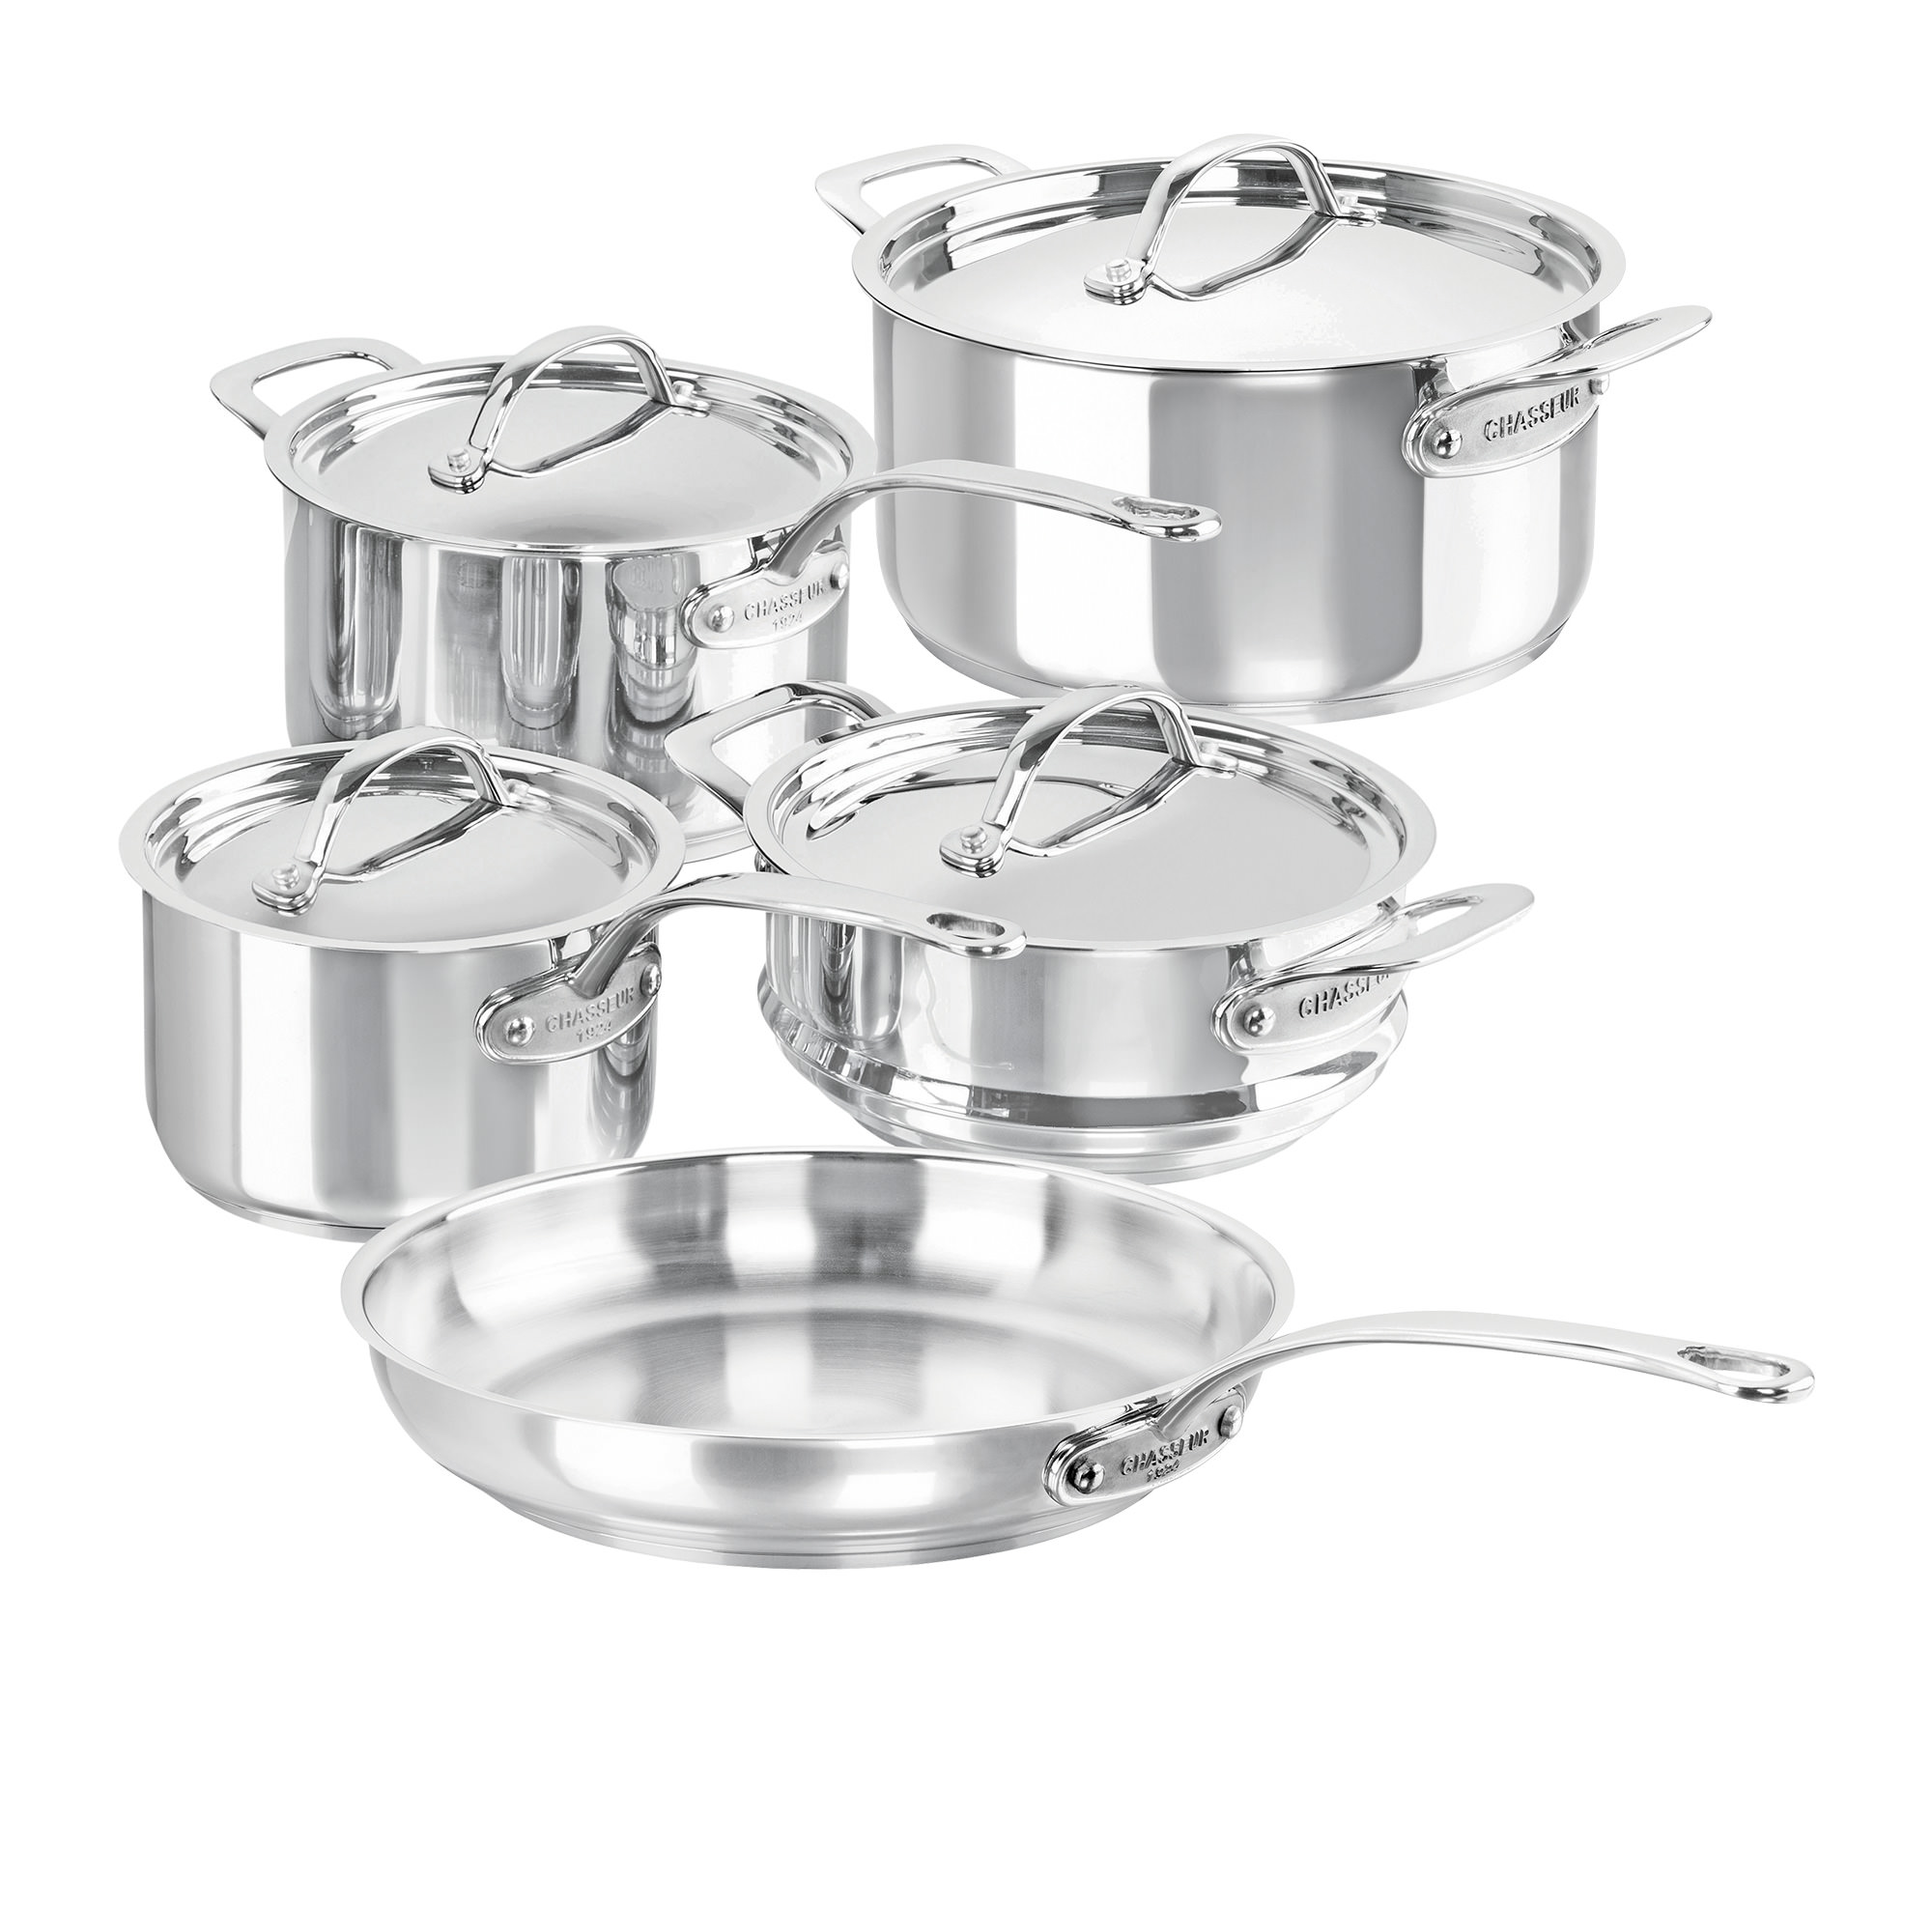 Chasseur Maison Stainless Steel 5pc Cookware Set